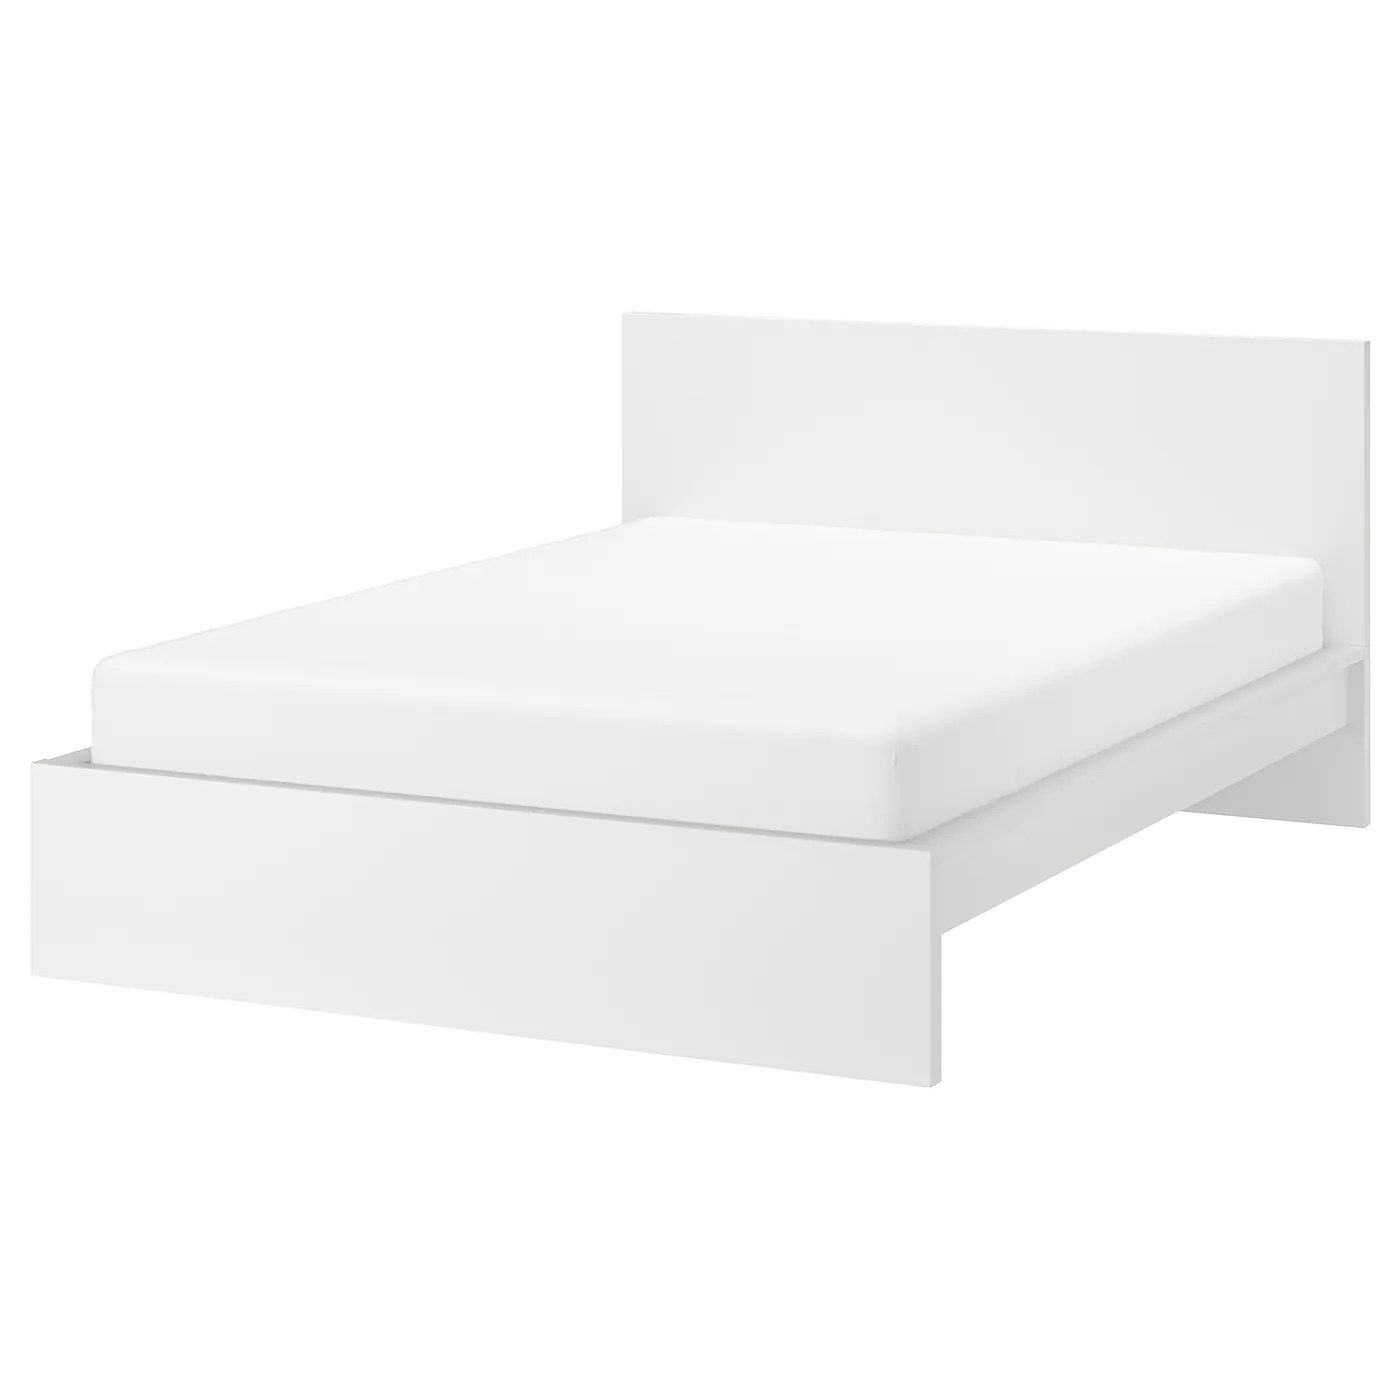 Double Beds Double Bed Frames Ikea